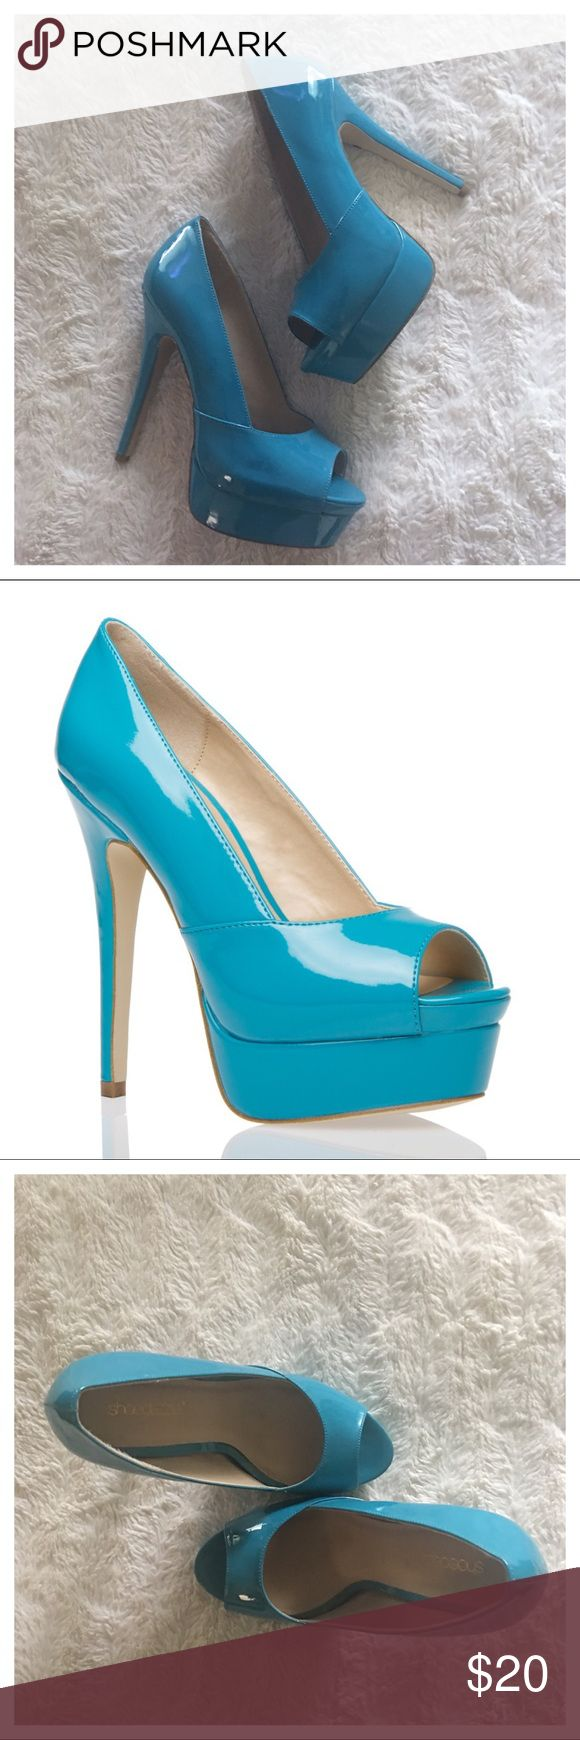 Shoe Dazzle Shakirah Heels - Turquoise Shoe Dazzle Shakirah Heels - Turquoise  Hips don't lie, and with her glossy eye-catching exterior neither does this towering peep-toe.   - Preowned Condition.  Worn a handful of times - good condition. - Heel Height : COMING ASAP  No TRADES. Please use offer button to negotiate. Thanks! Shoe Dazzle Shoes Heels